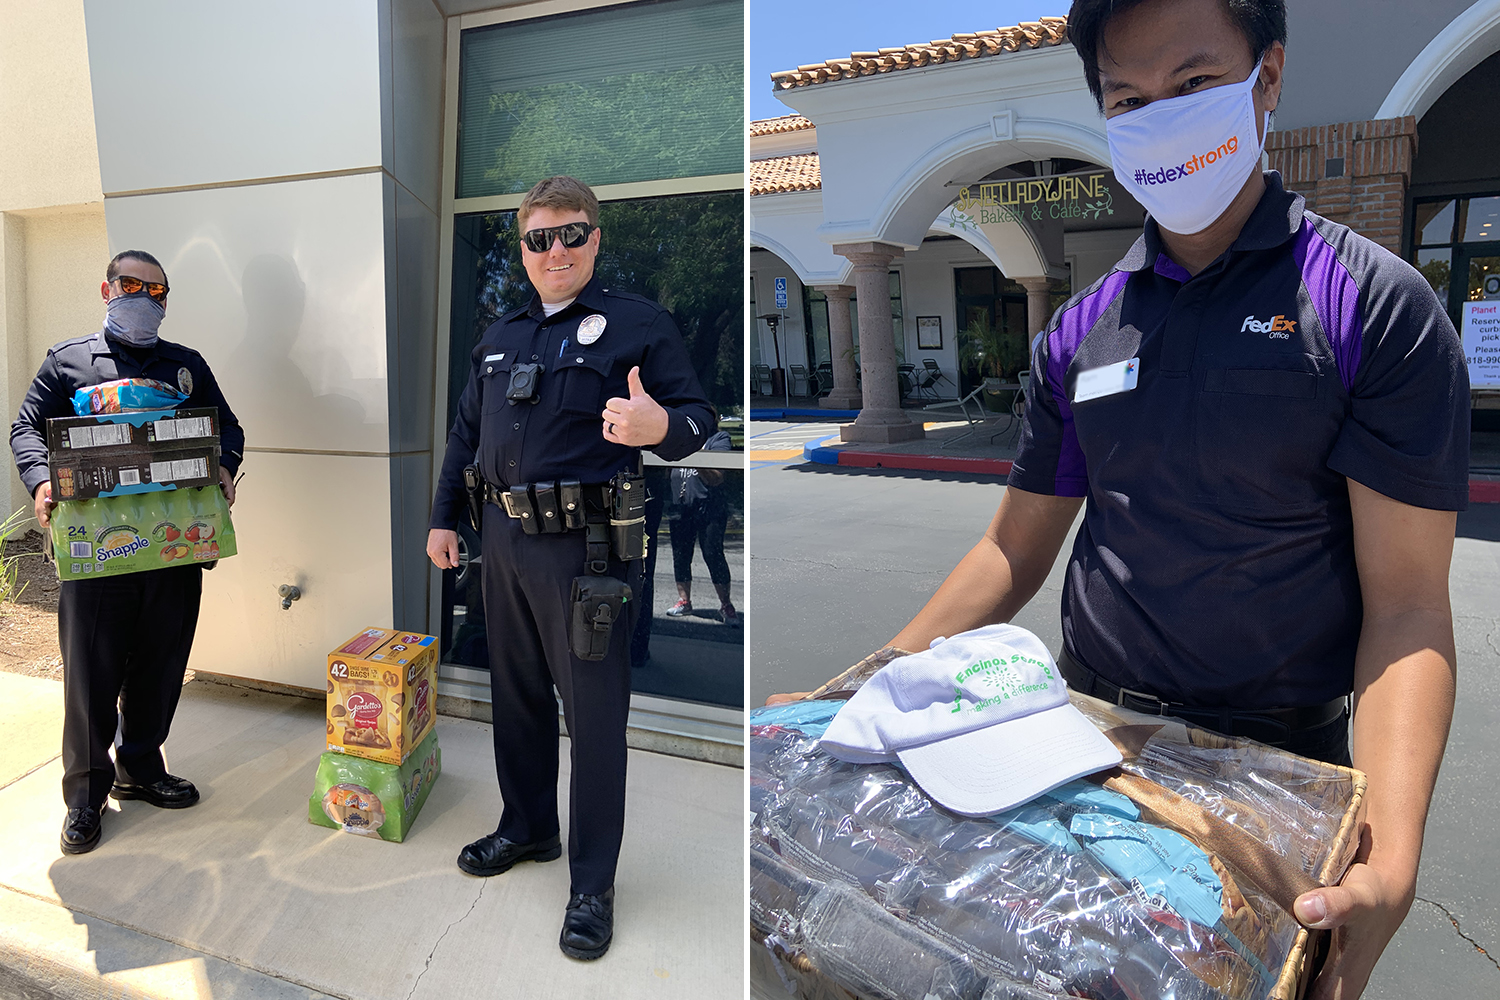 Police and shipping personnel appreciate the goodies!